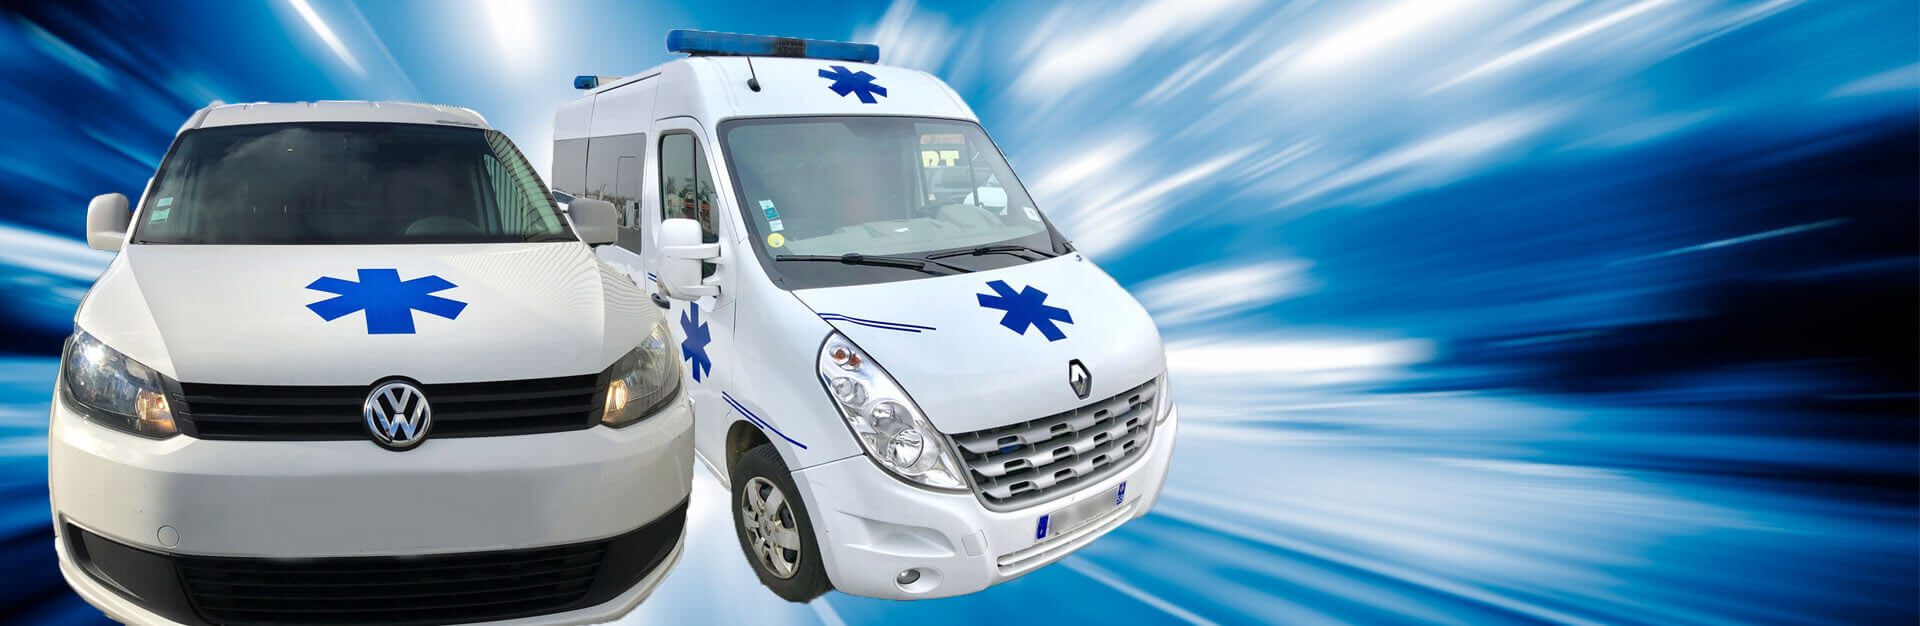 vente ambulances